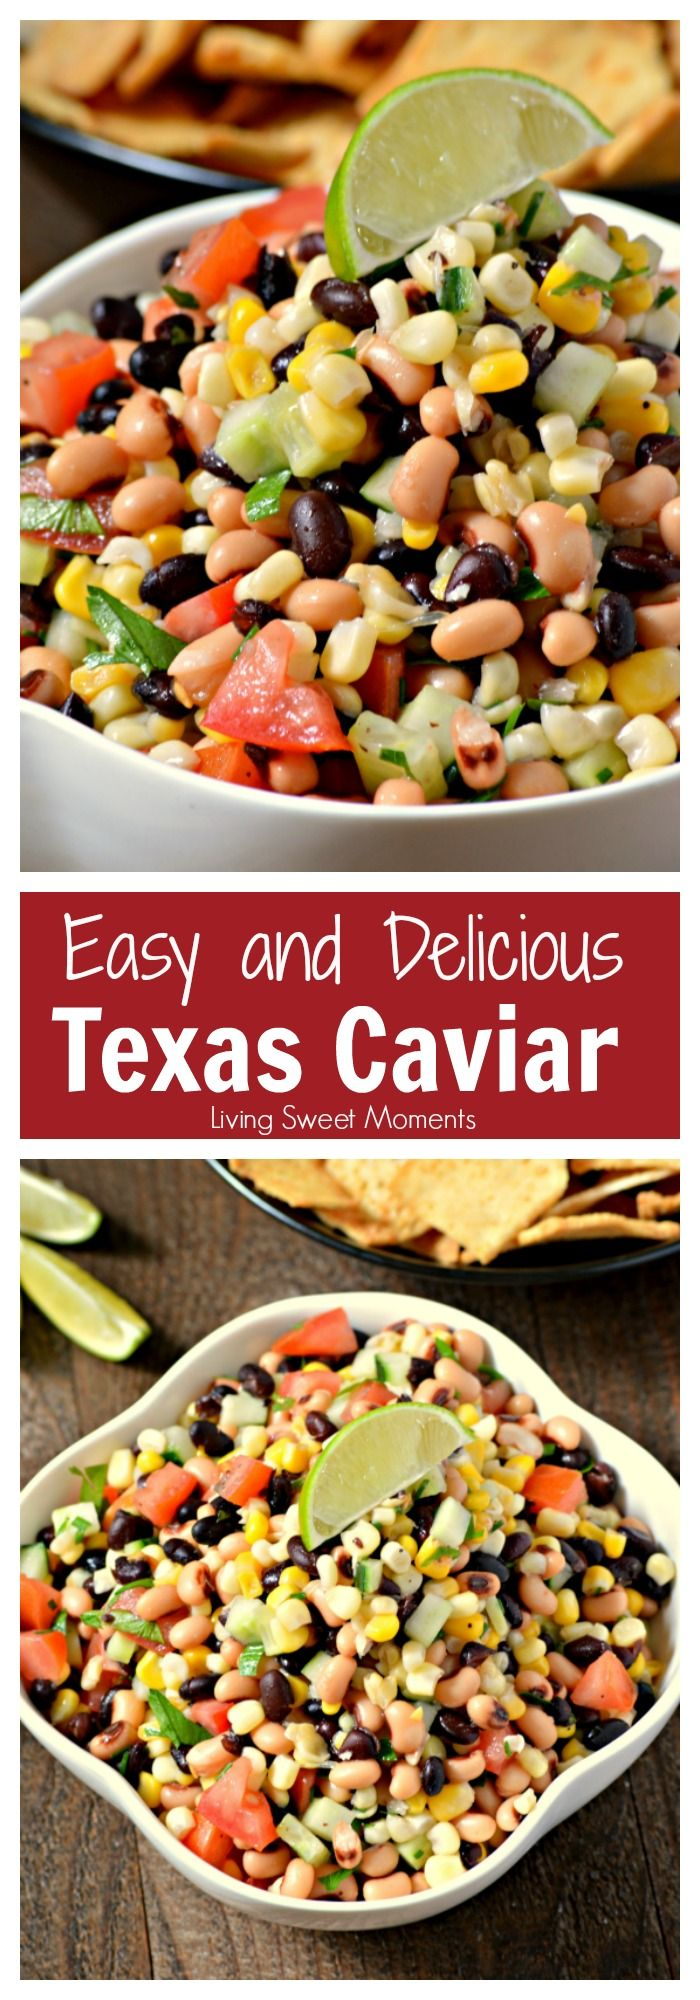 This amazing Texas Caviar Dip recipe is the perfect appetizer that's easy to make and delicious. Is it also vegan, gluten free & healthy. Better than salsa. More vegan recipes at livingsweetmoments.com  via @Livingsmoments